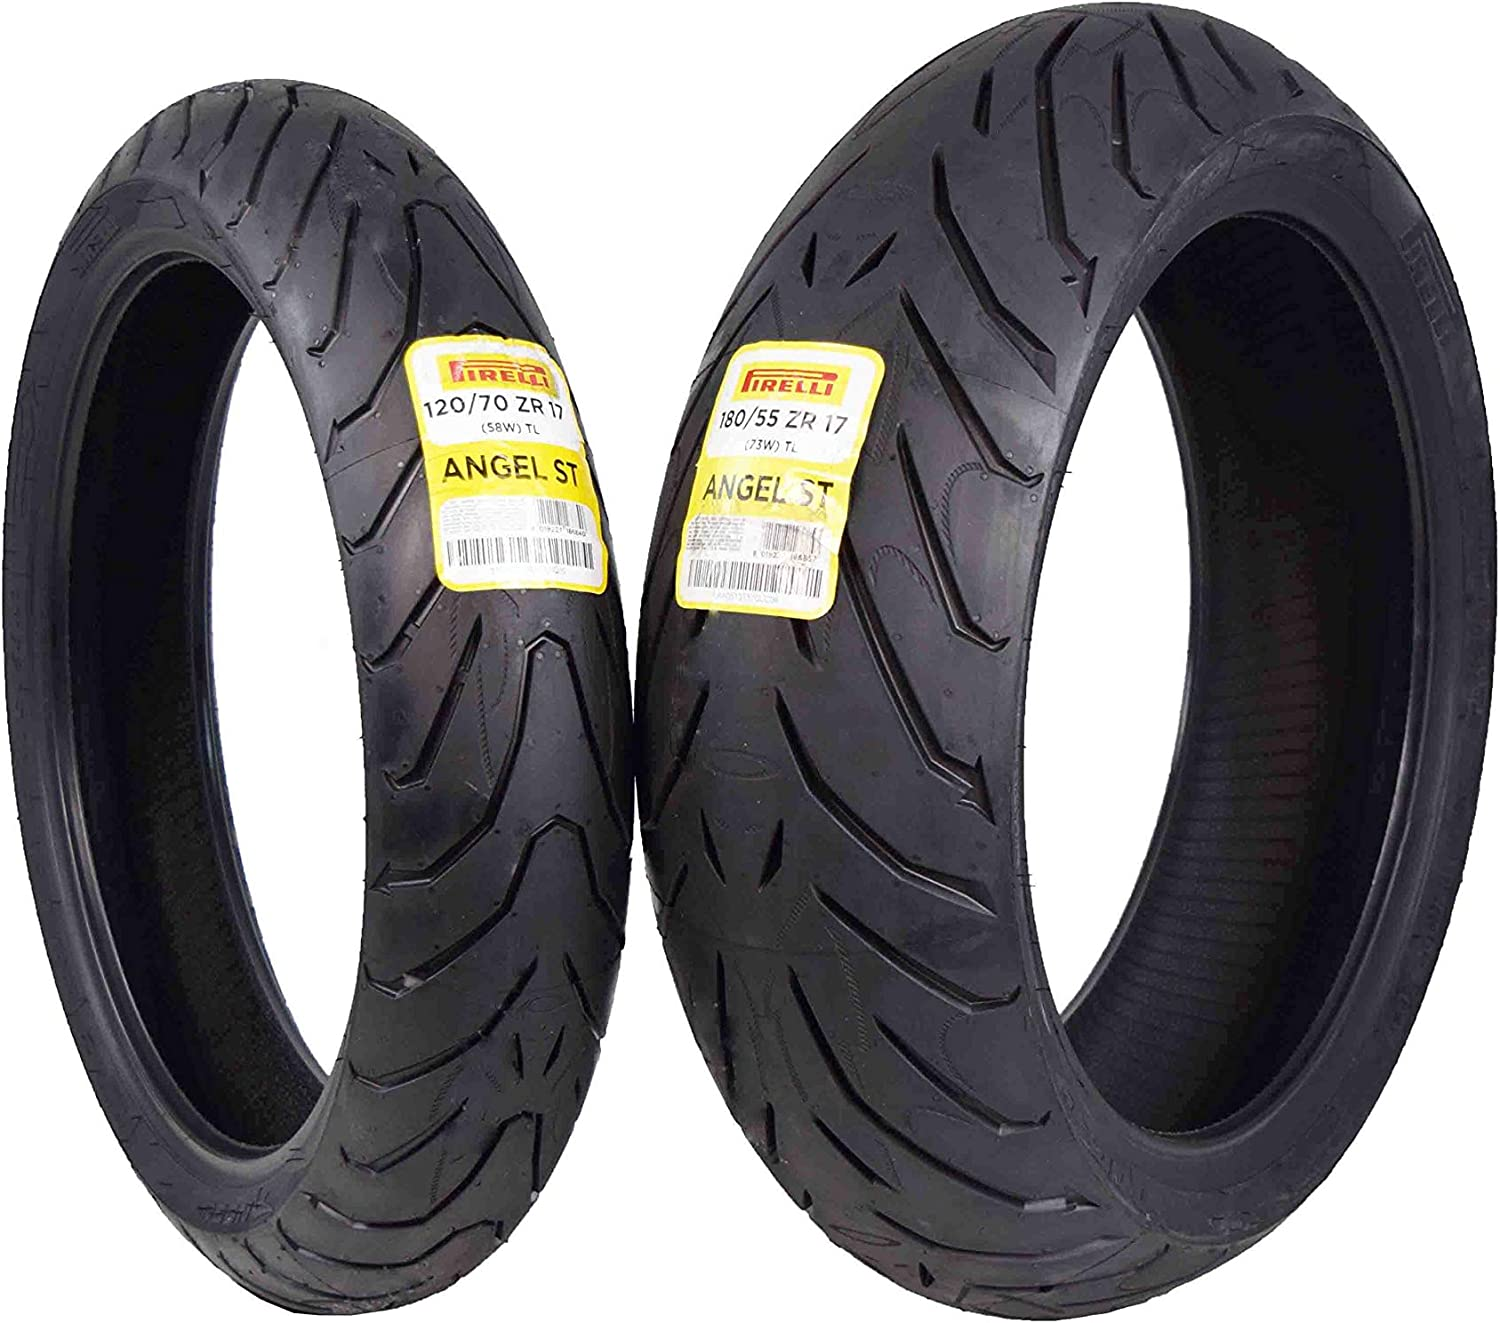 75W Pirelli Angel GT 120//70 ZR17 58W Motorcycle // Bike Tyres /& 190//55 ZR17